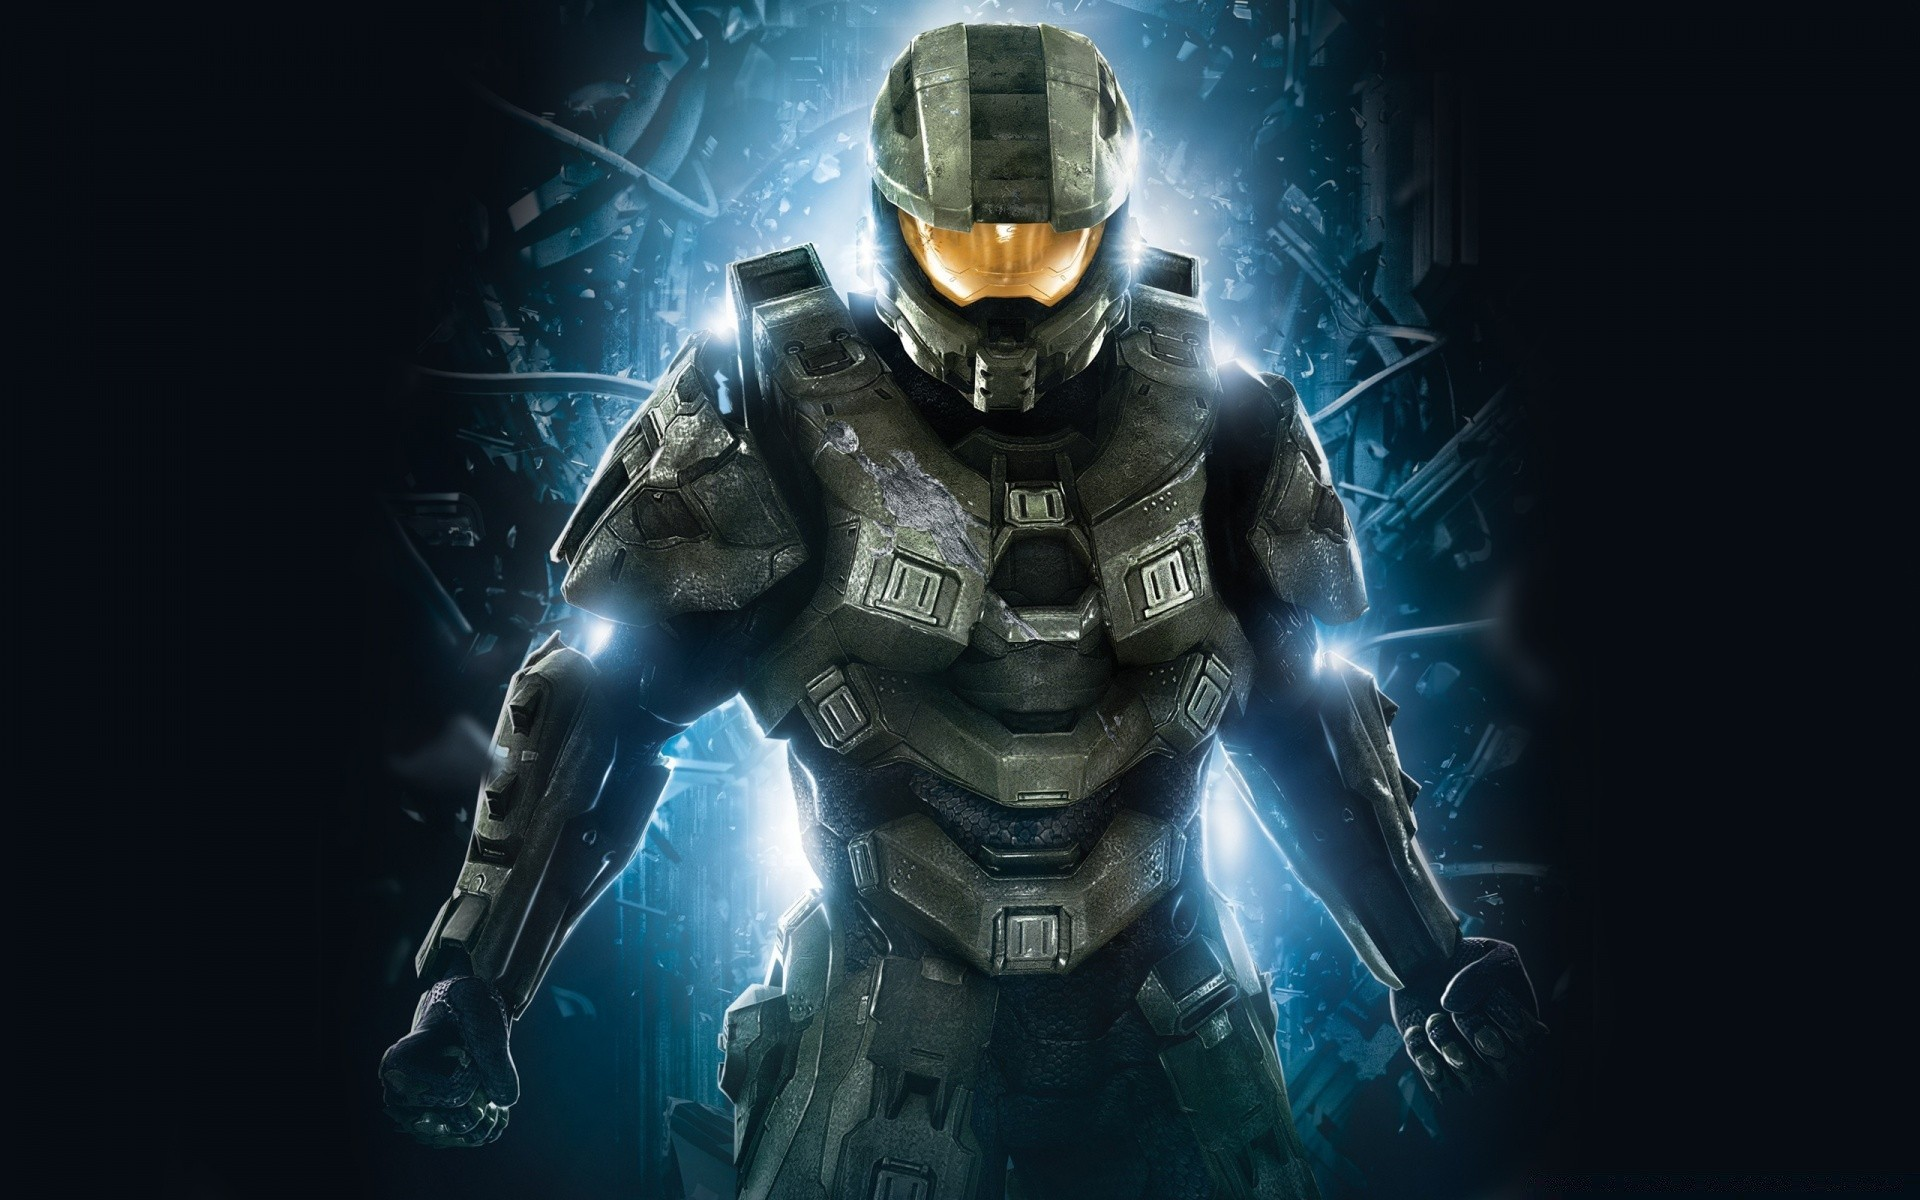 Halo 4 Master Chief - Phone wallpapers